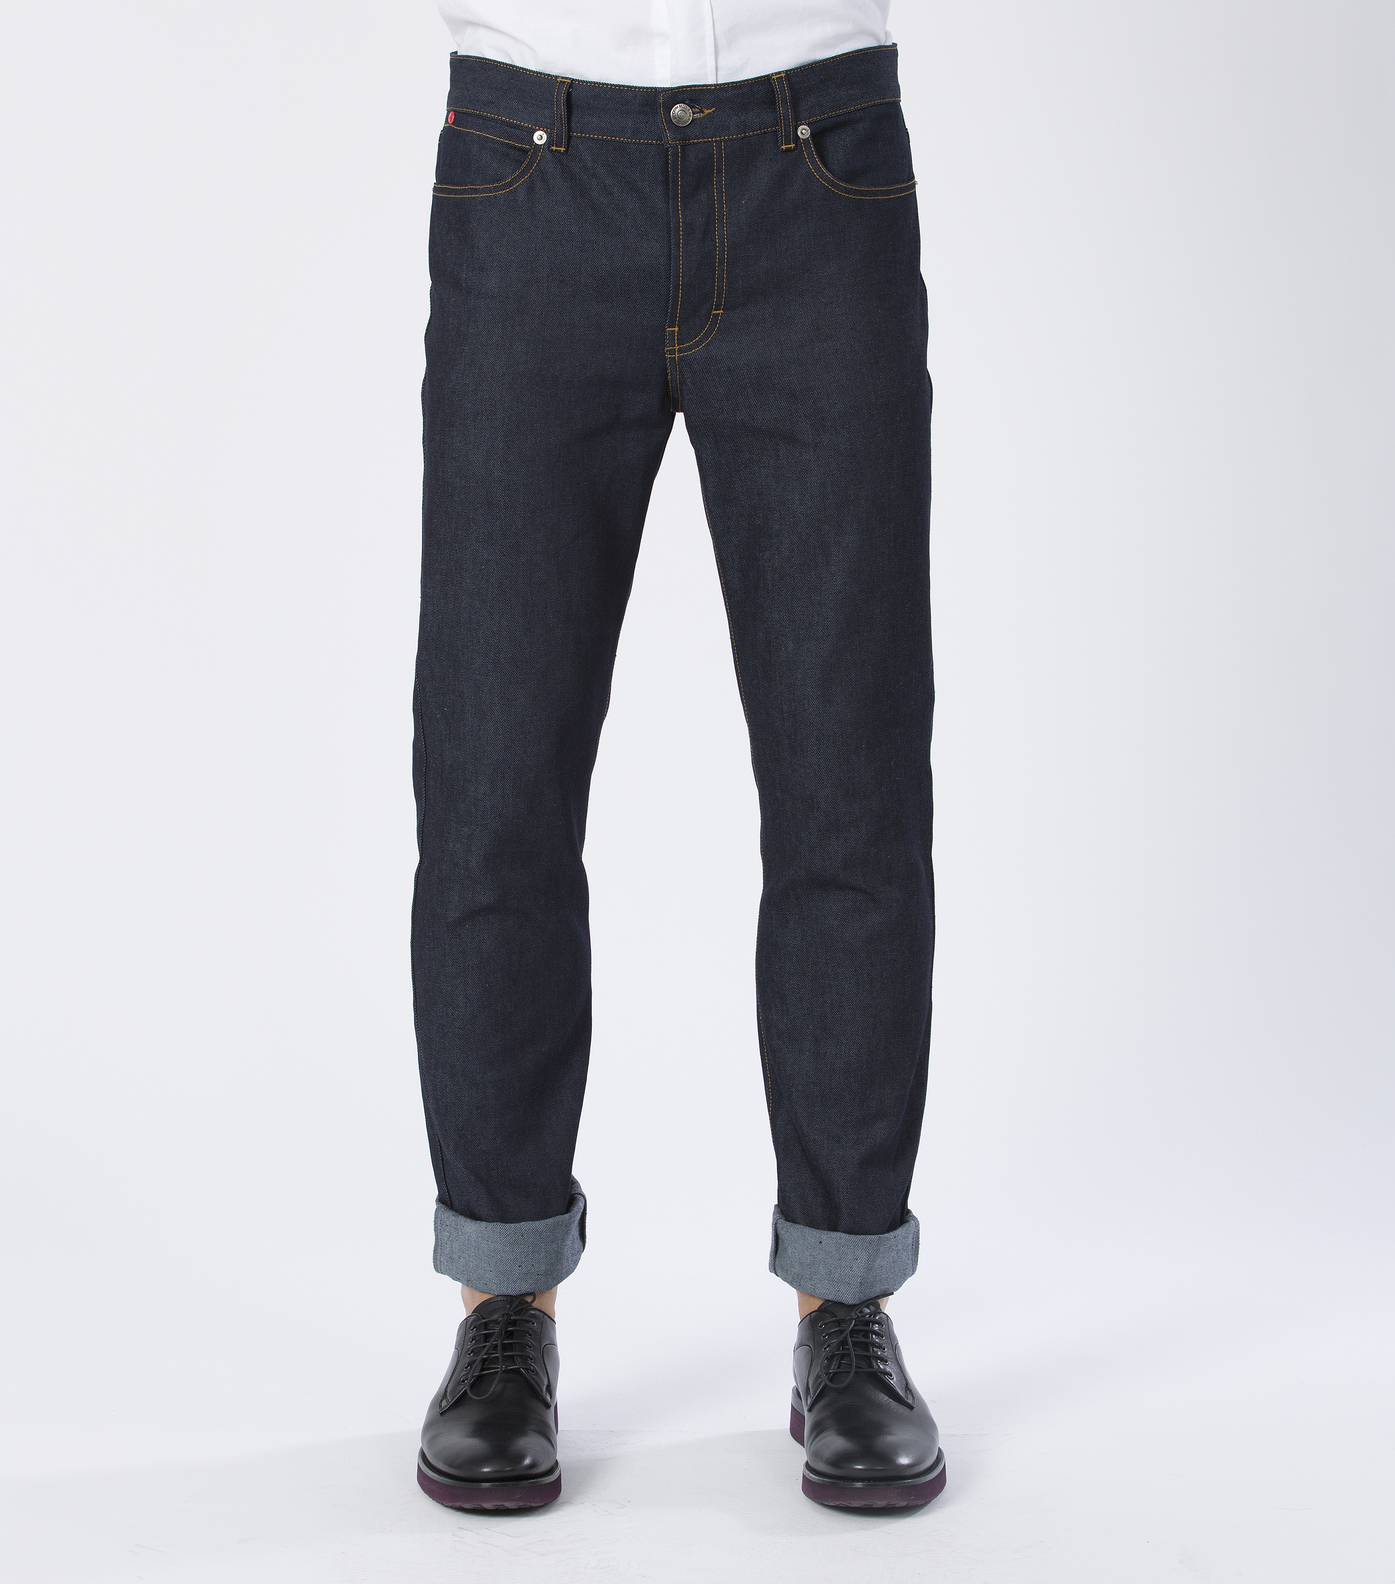 PANTS GN.DENIM - Raw denim